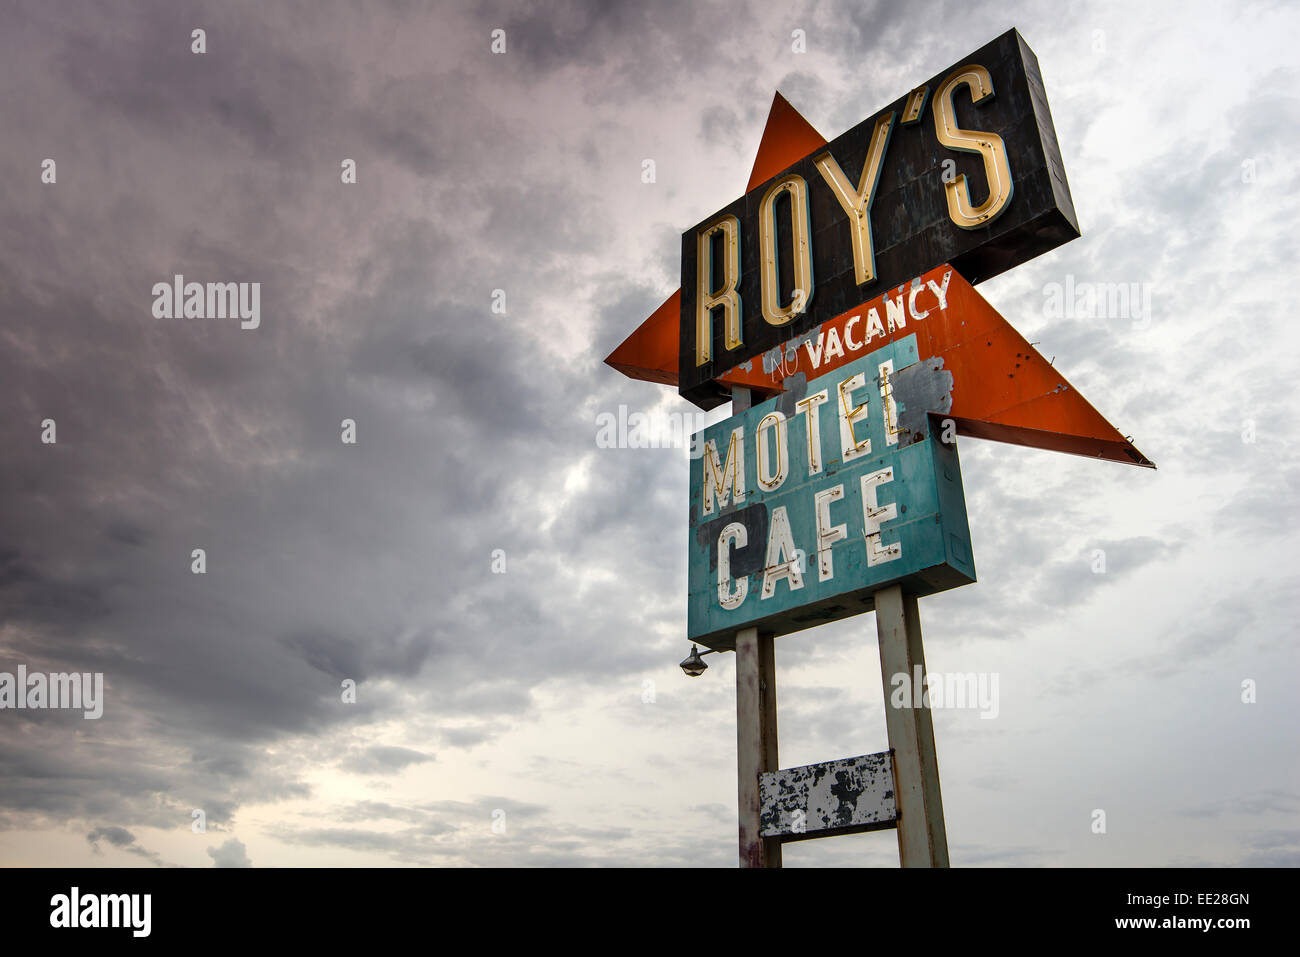 Roy's Motel and Cafe vintage sign, Amboy, California, USA - Stock Image